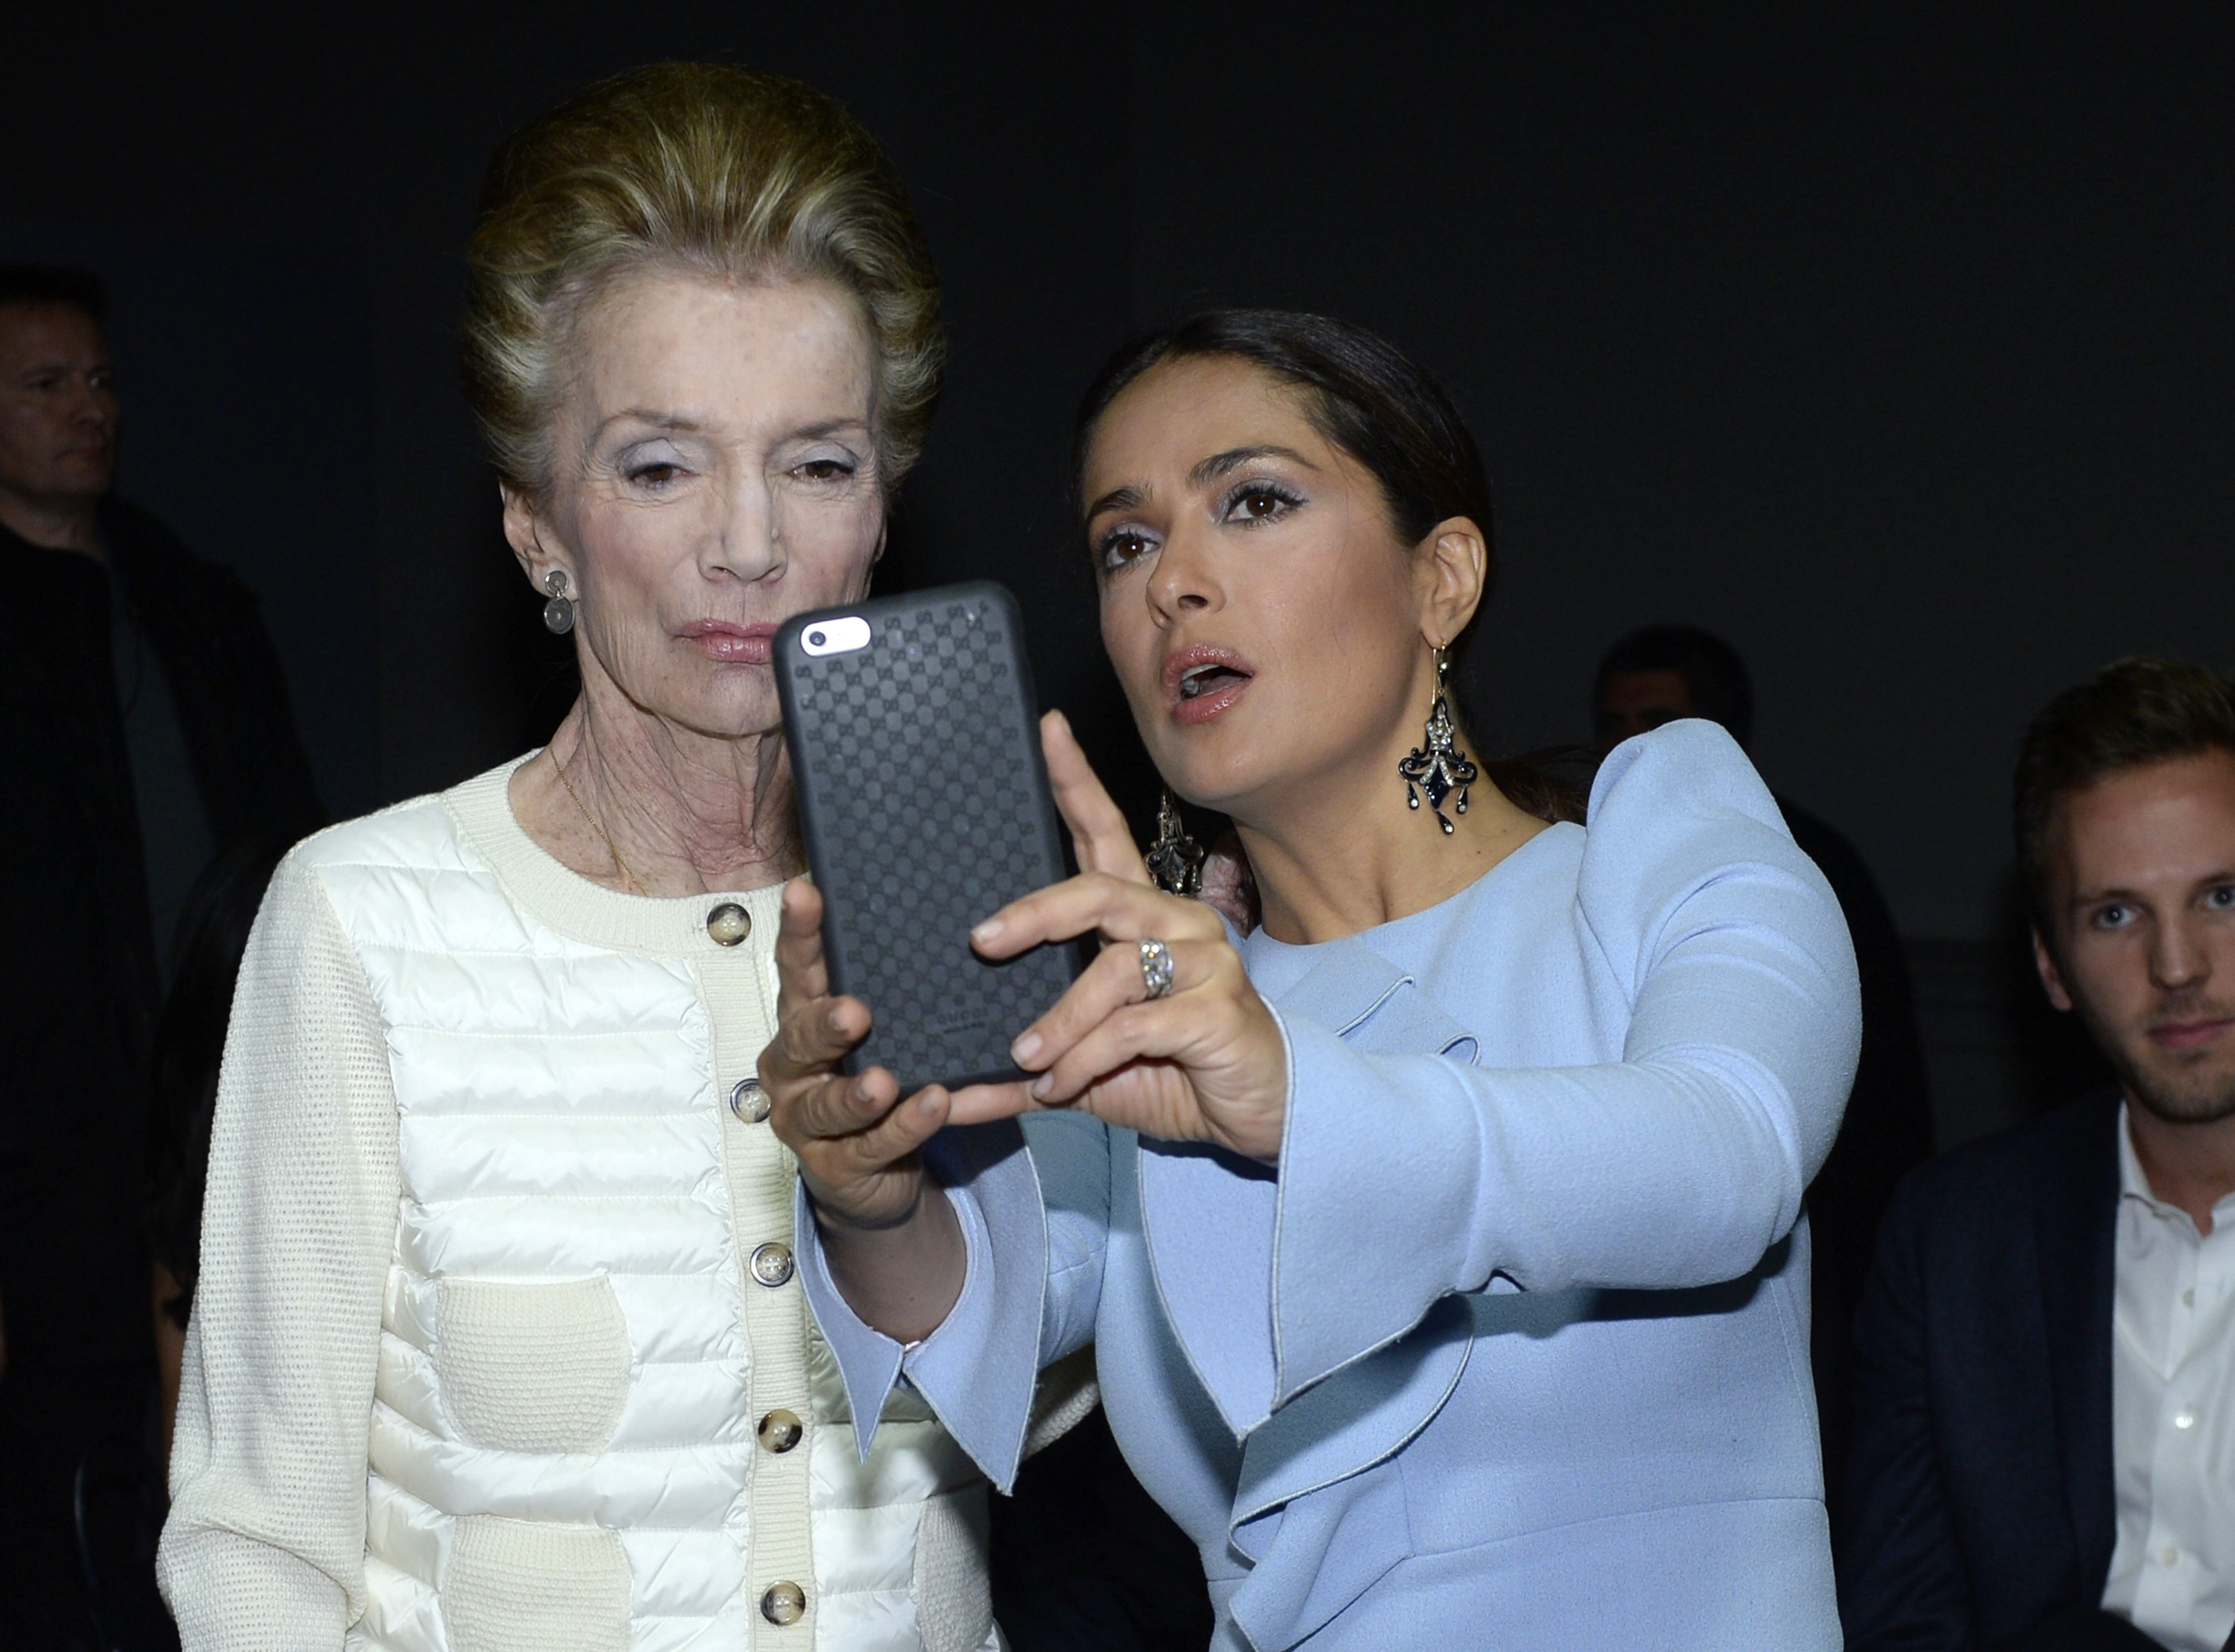 Princess Lee Radziwill and Mexican actress Salma Hayek pose for a selfie before the Giambattista Valli 2016 Spring/Summer ready-to-wear collection fashion show, on Oct. 5, 2015 in Paris.